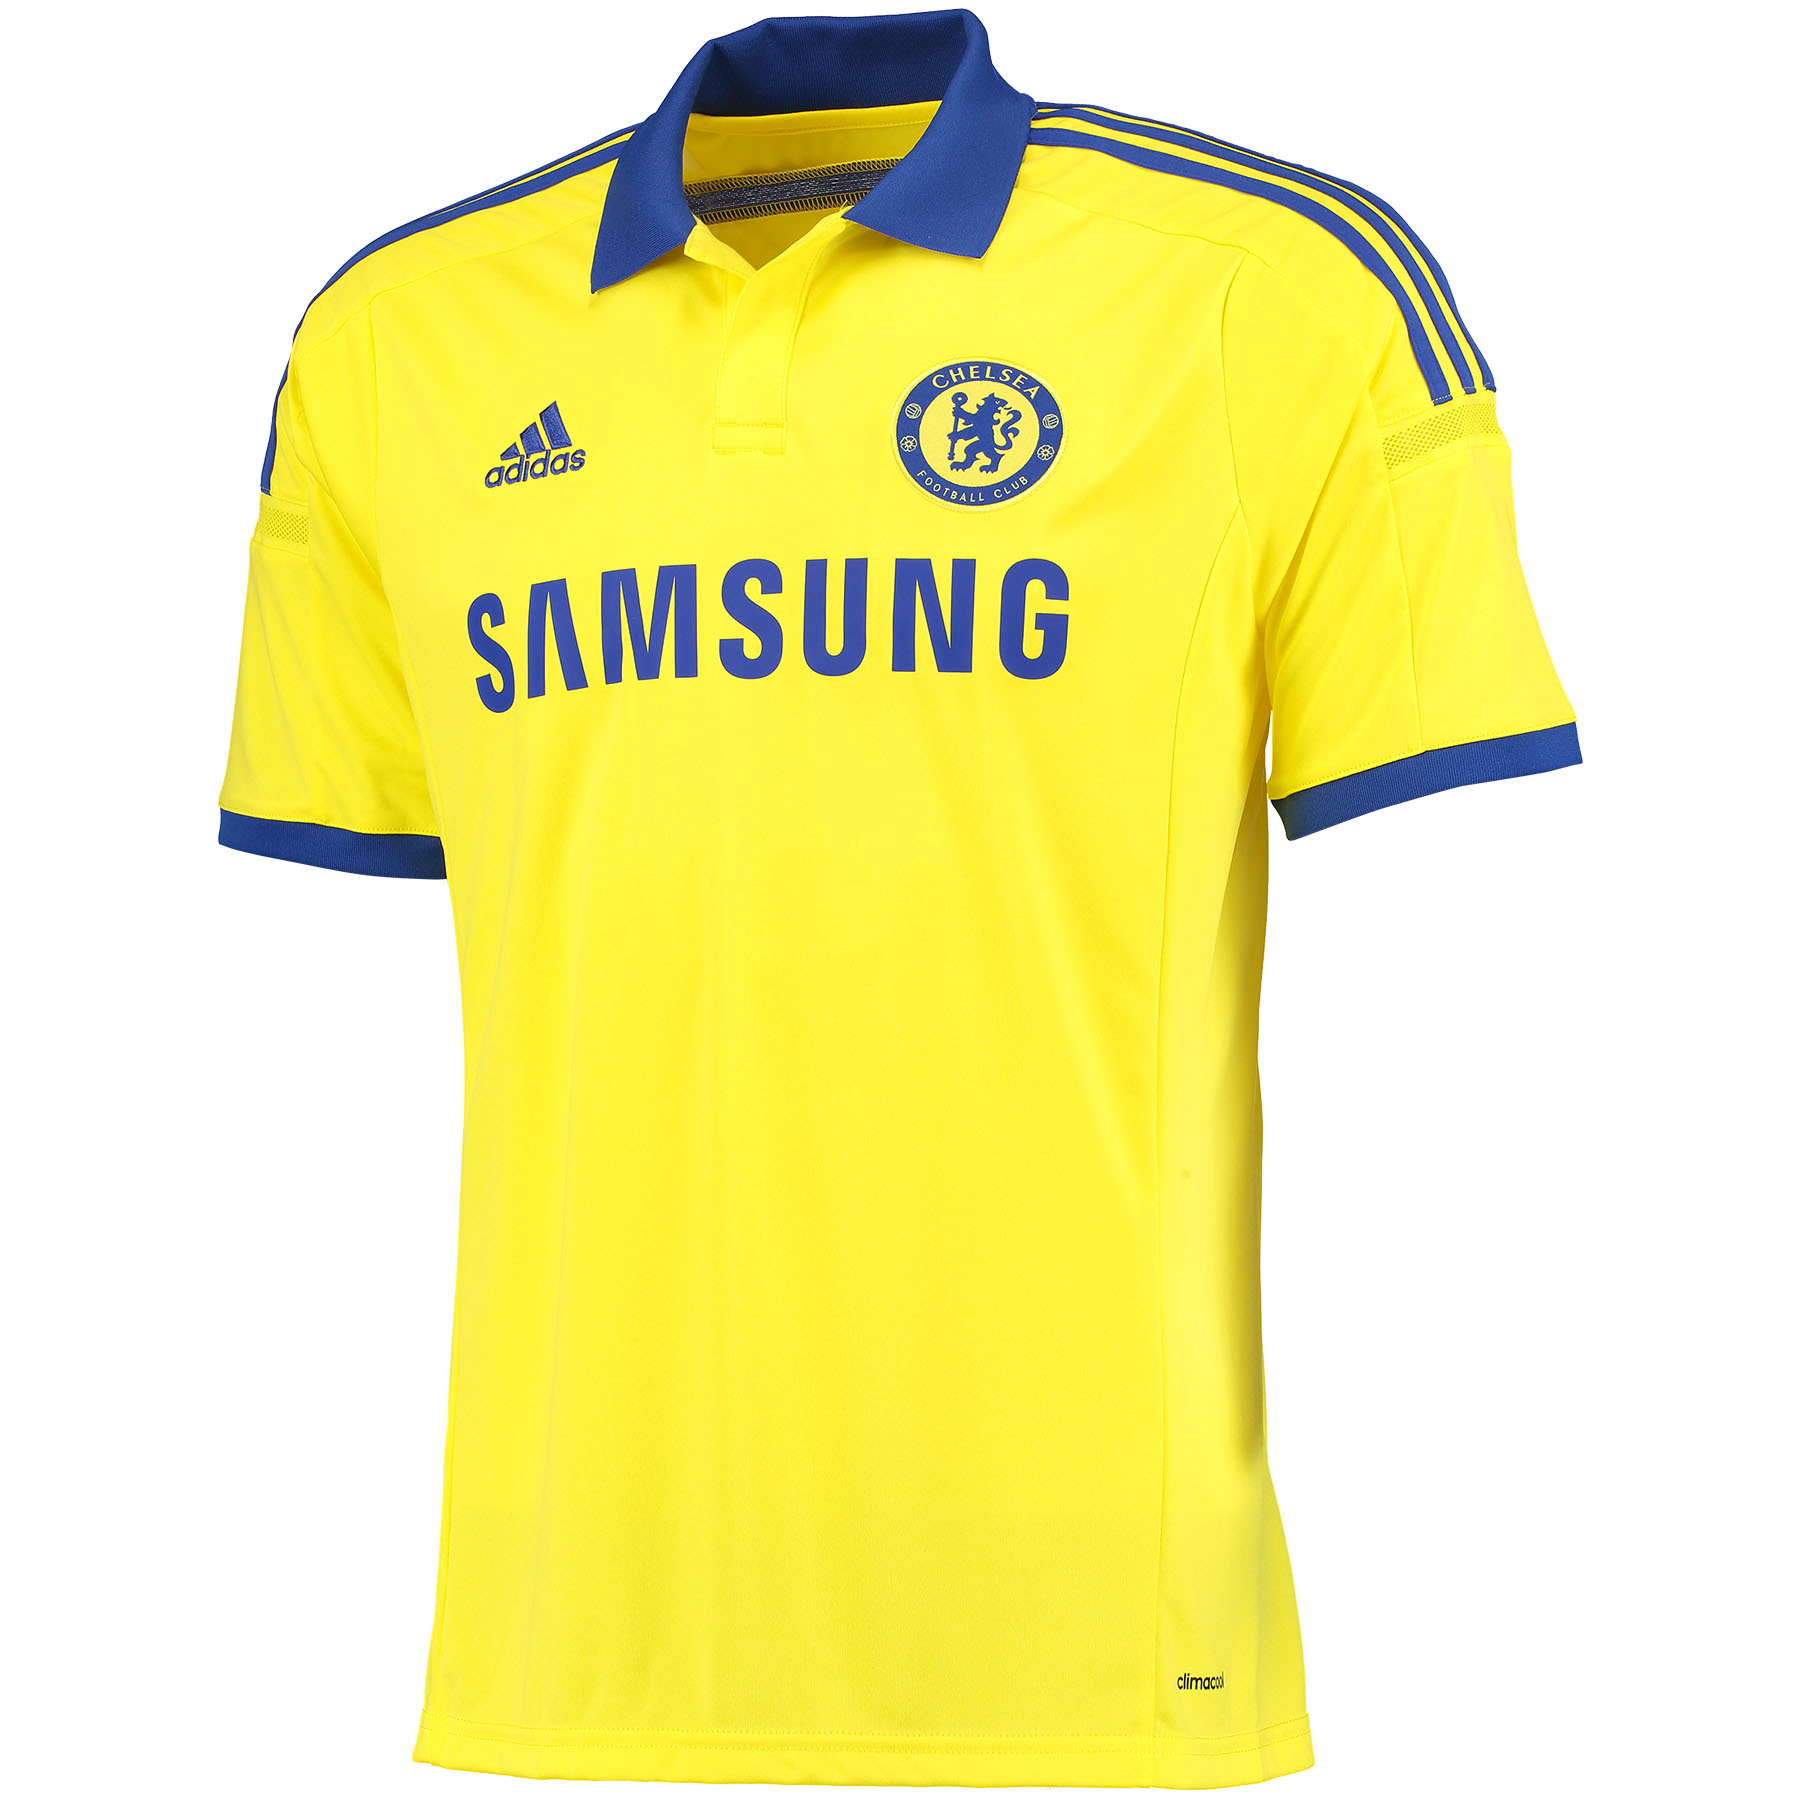 Chelsea Away Shirt 2014/15 Yellow   Support your favourite team with pride and style with this yellow 2014/15 Chelsea away shirt which is inspired by the iconic yellow away kits from the club's past.   This brand new Chelsea Away Shirt will be the lightest Chelsea jersey ever produced, featuring the latest in adiZero lightweight technology so nothing will be weighing you down as you practise your skills. Styled with a polo collar and an iconic contrast blue stripe across the back, this stylish shirt looks as good as it feels.   Benefits of this Chelsea Away Shirt •adiZero lightweight technology which promises lightweight comfort •Polo collar to pay tribute to retro designs •Iconic blue stripe on the back which contrasts the two Chelsea colours   Fans of all ages will have great memories of Chelsea in a yellow away strip, from its first outings with the likes of Peter Osgood in the 1960s and 1970s, through to Frank Lampard's fantastic performance in the FA Cup 2009 final.